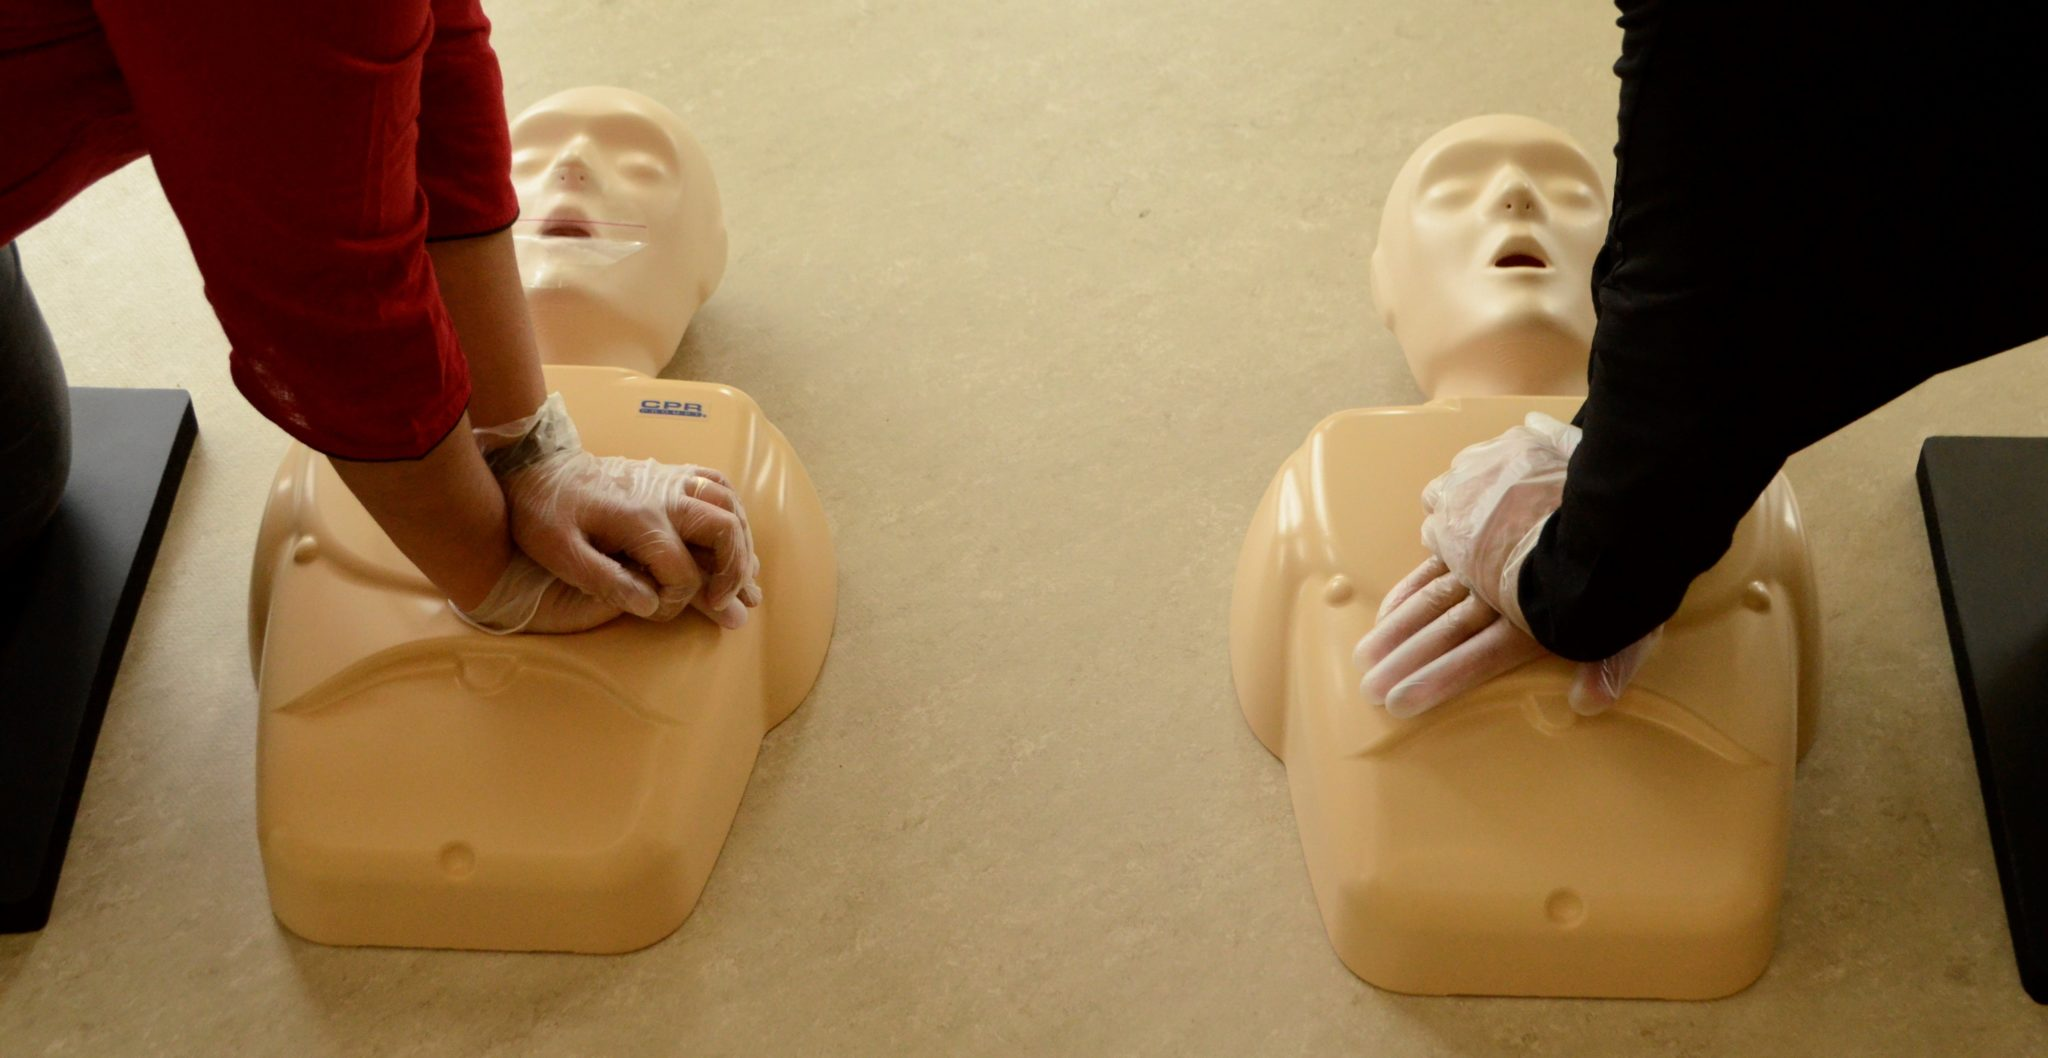 Emergency First Aid / CPR-AED